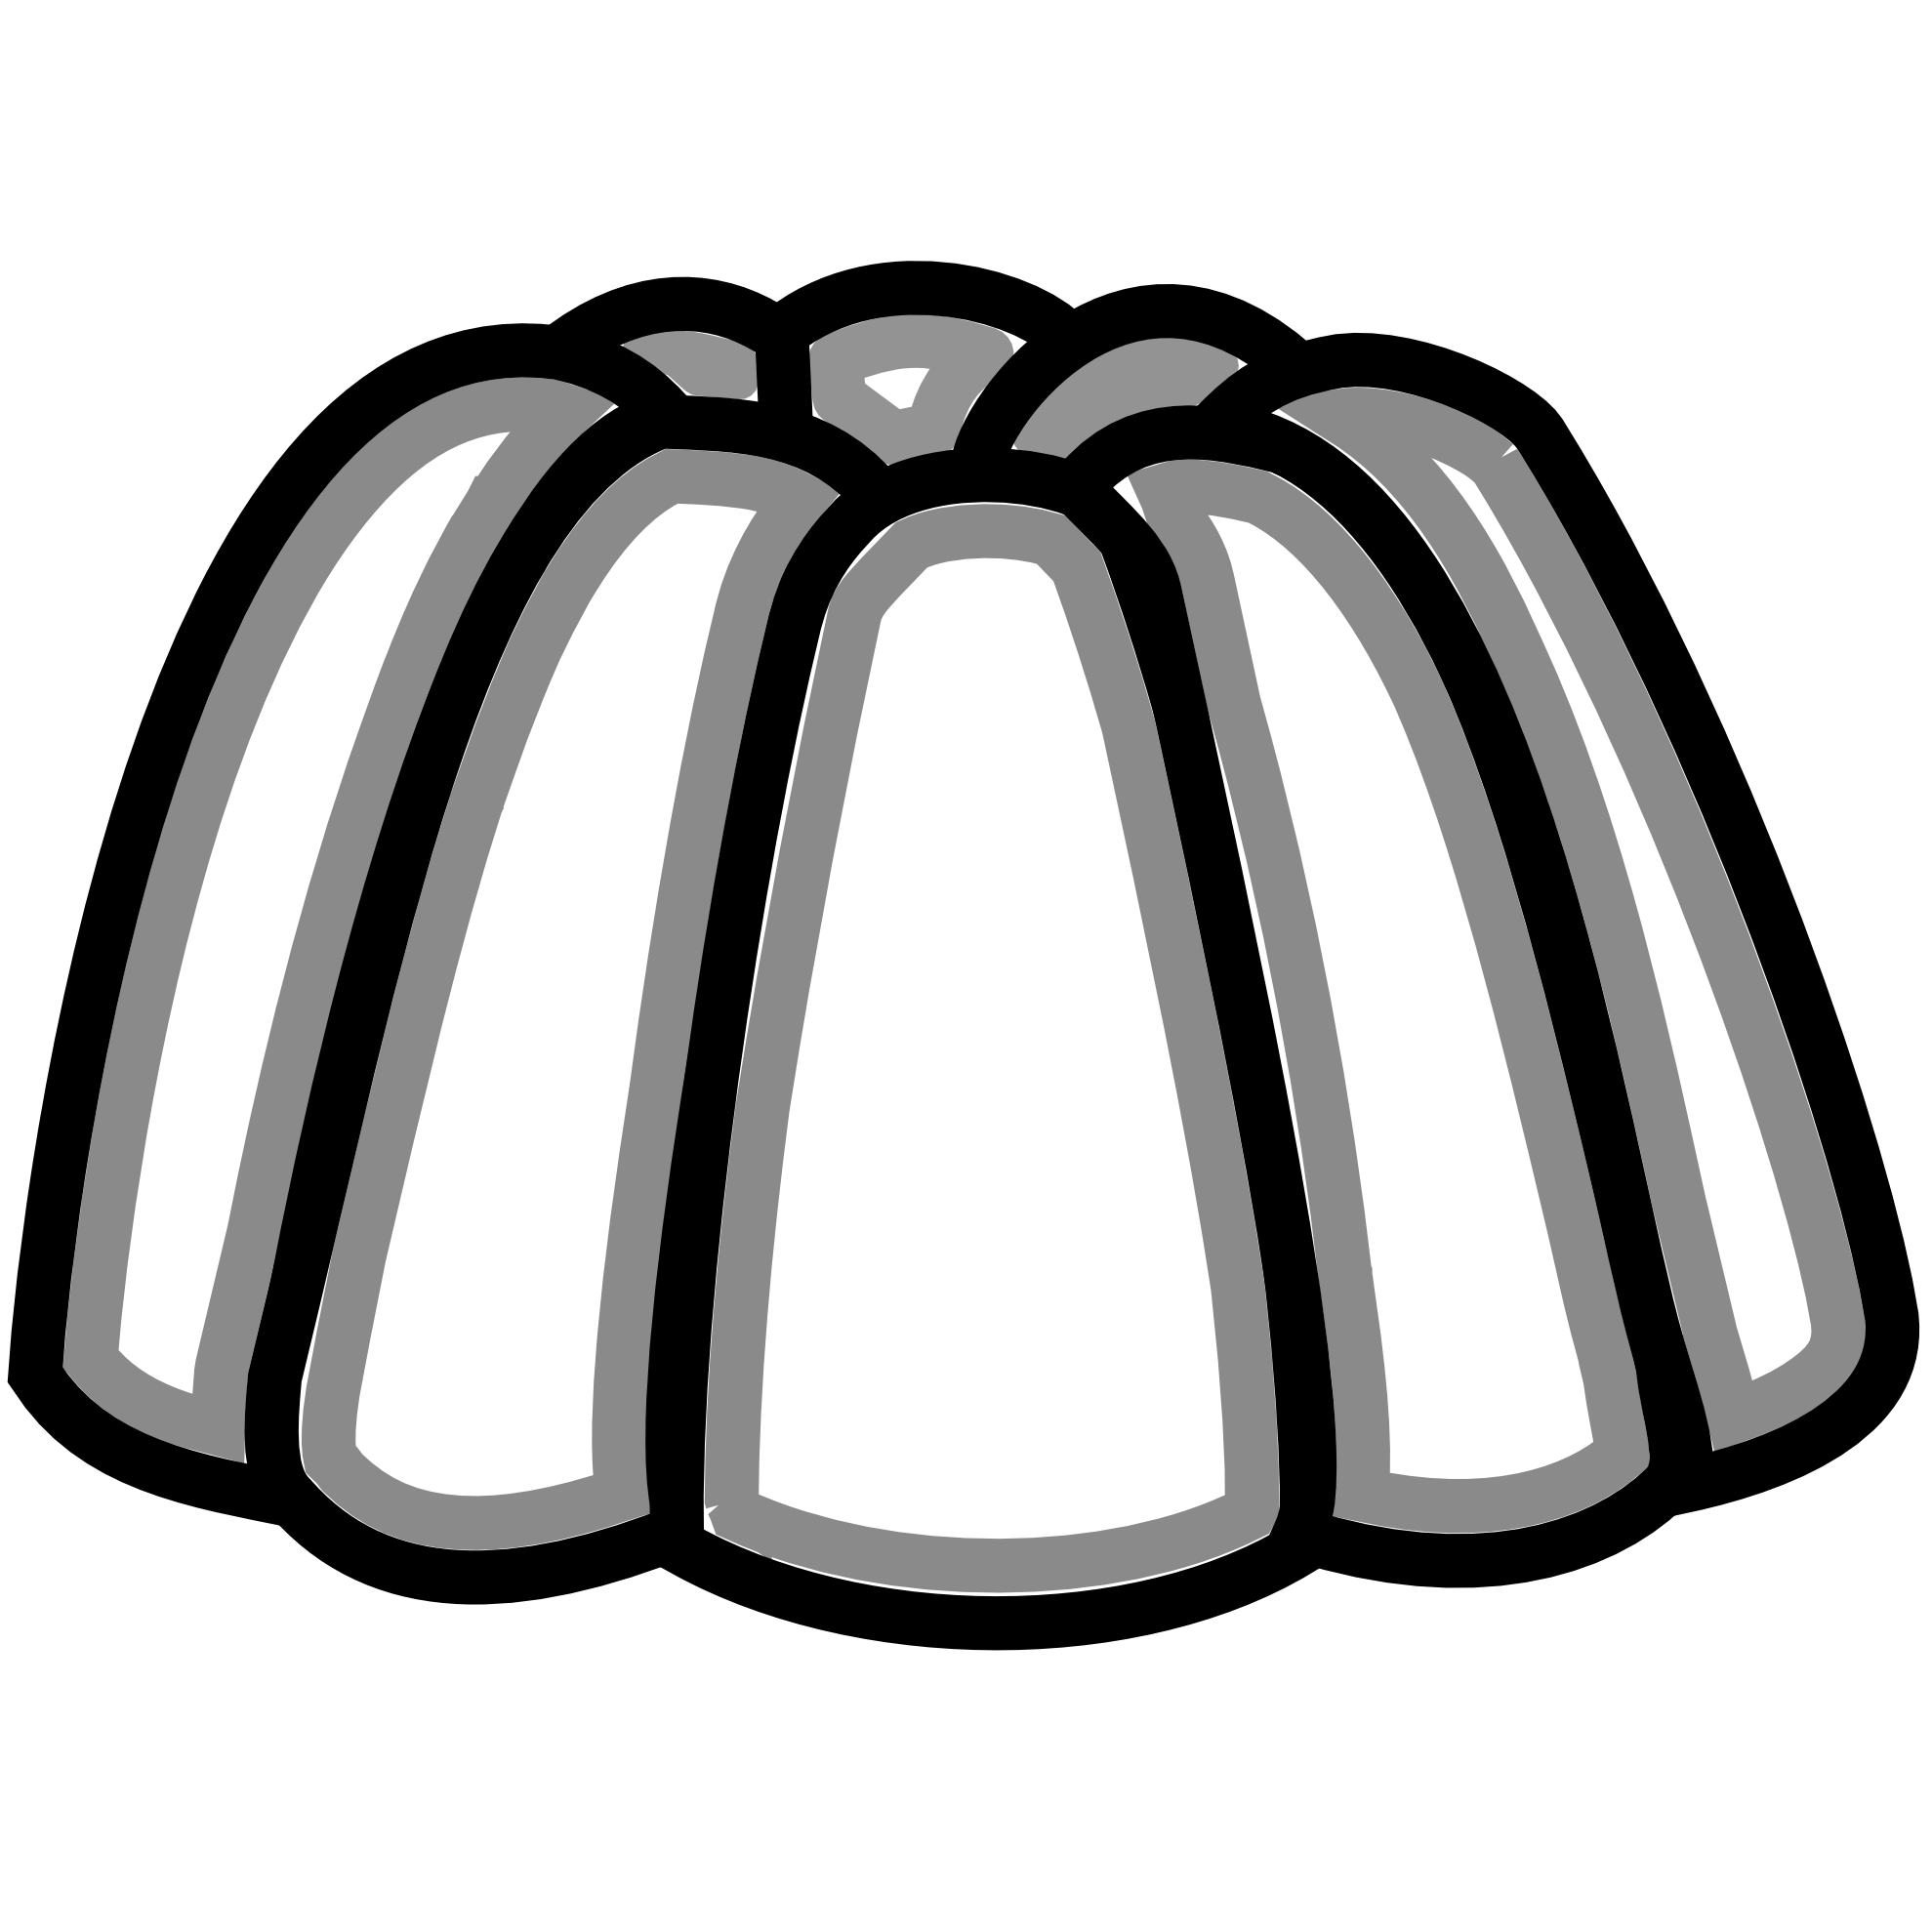 Jelly clipart outline.  collection of black